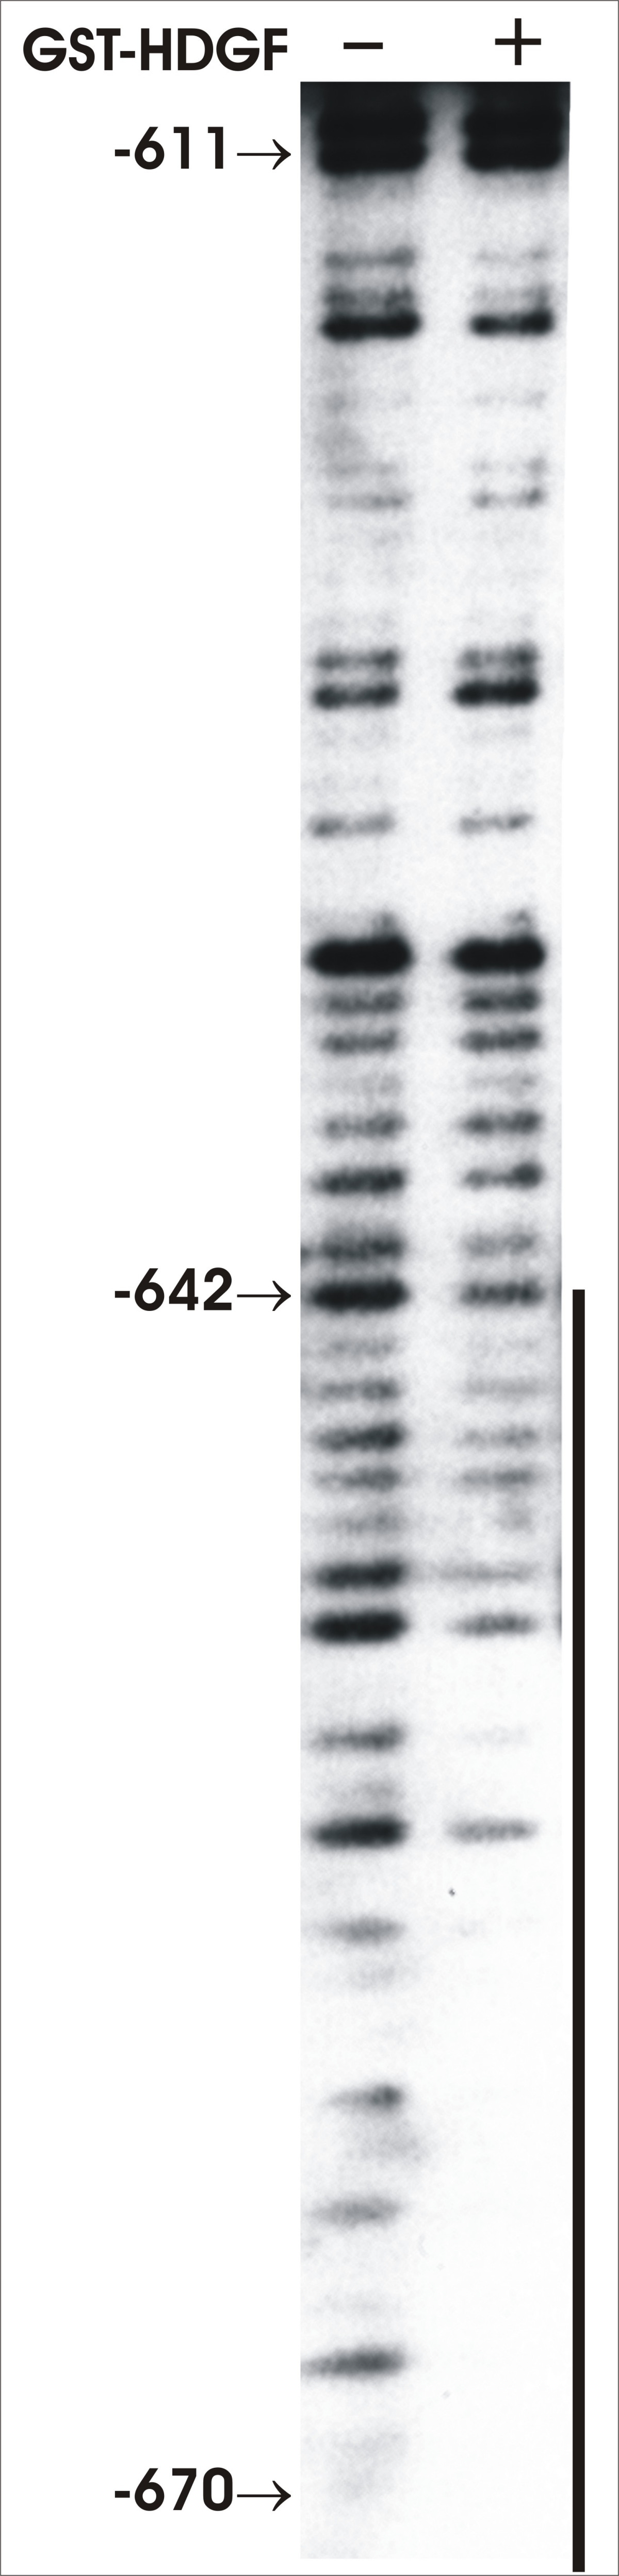 http://static-content.springer.com/image/art%3A10.1186%2F1471-2199-8-101/MediaObjects/12867_2007_Article_238_Fig4_HTML.jpg